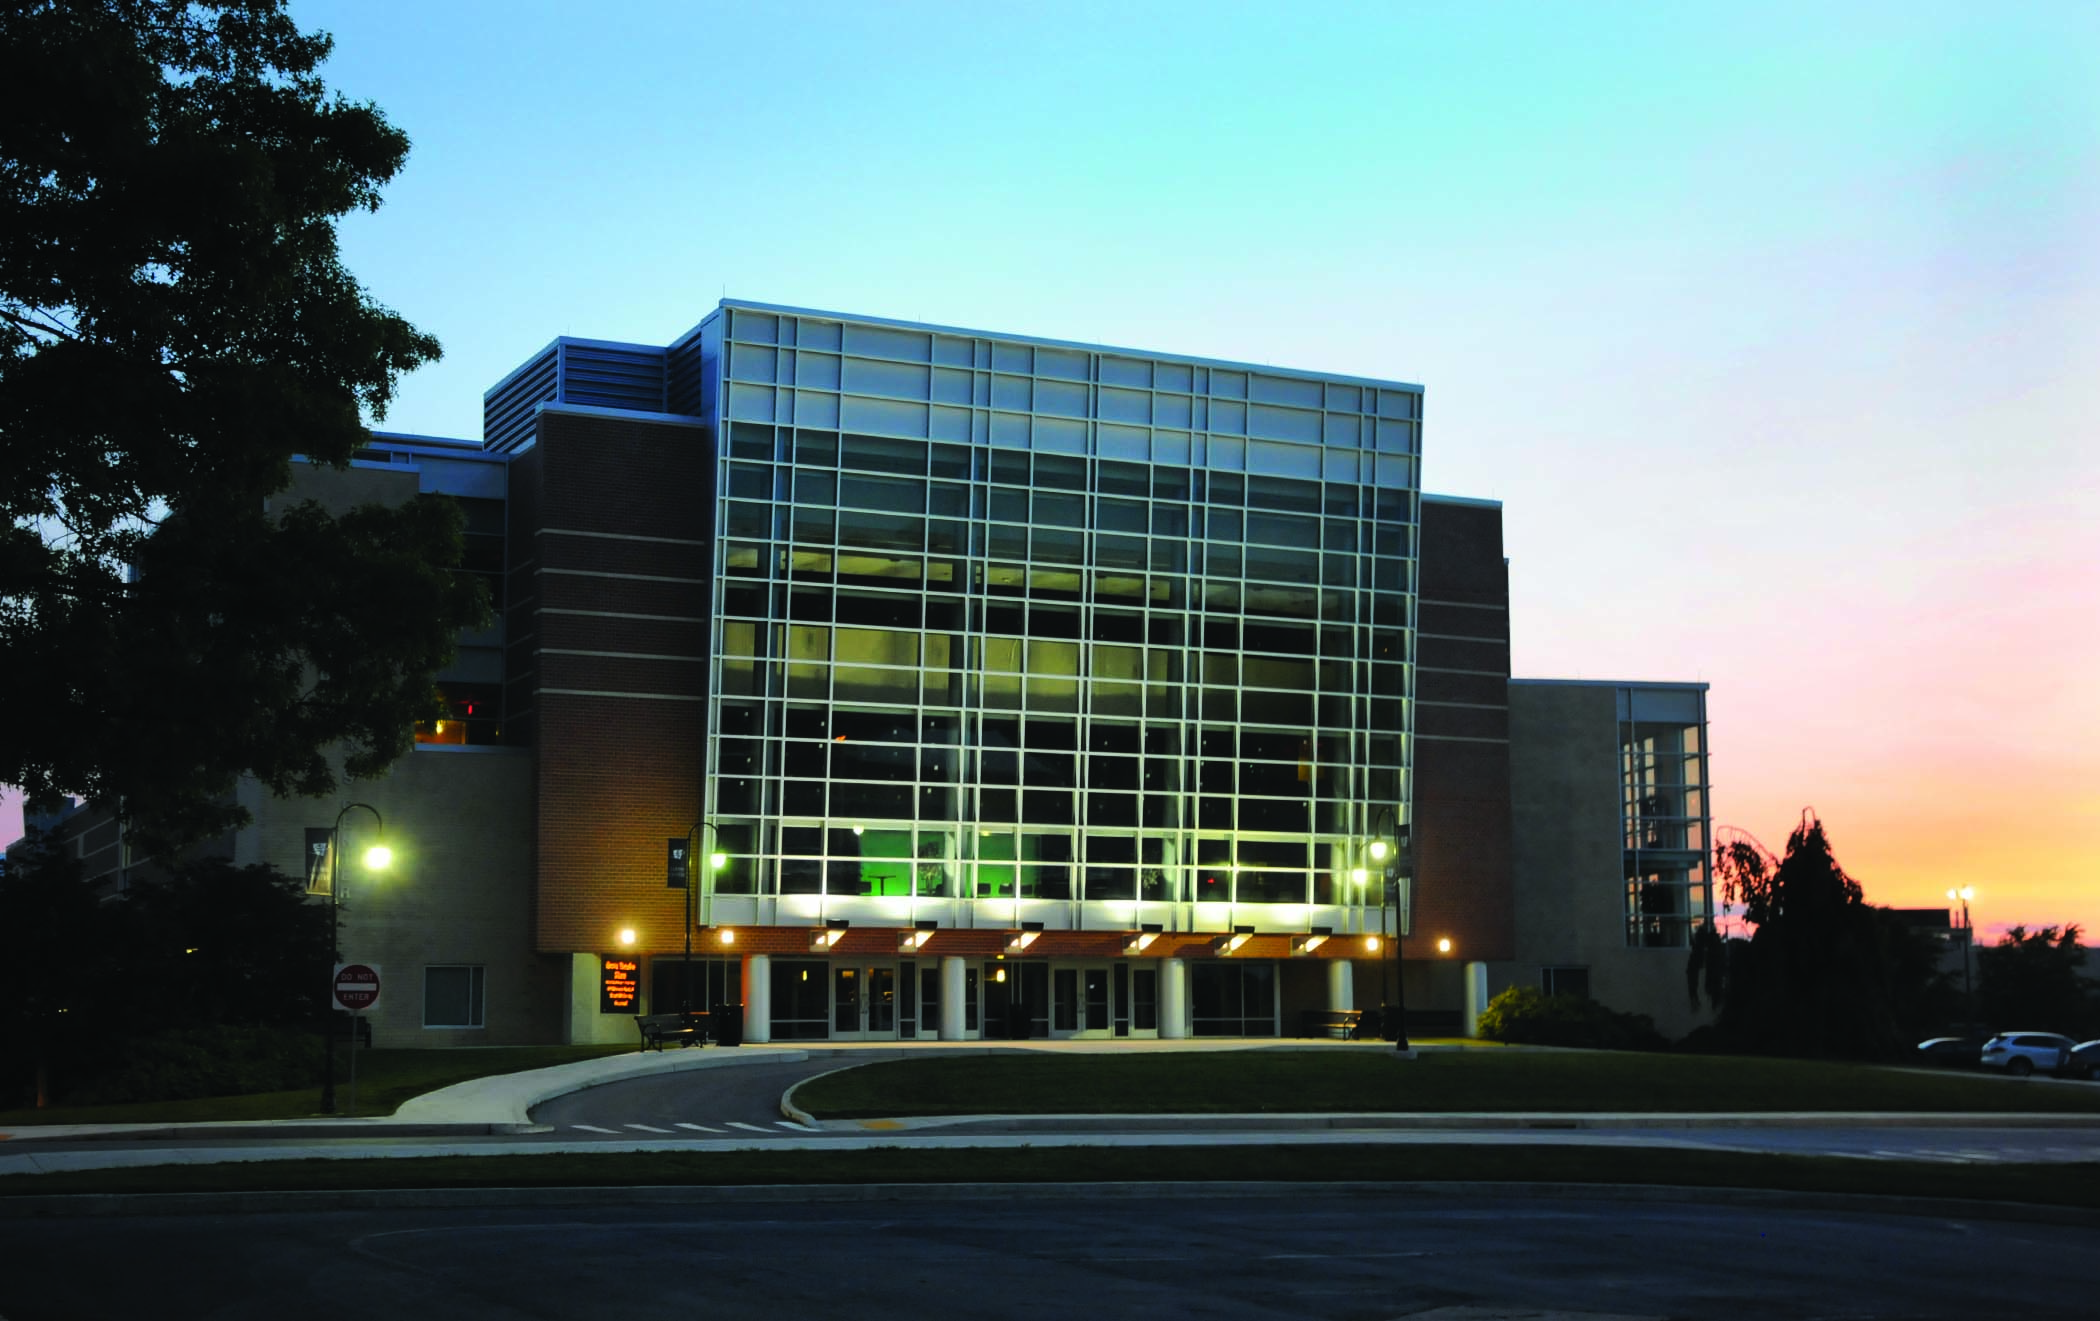 The Luhrs Performing Arts Center at Shippensburg University.